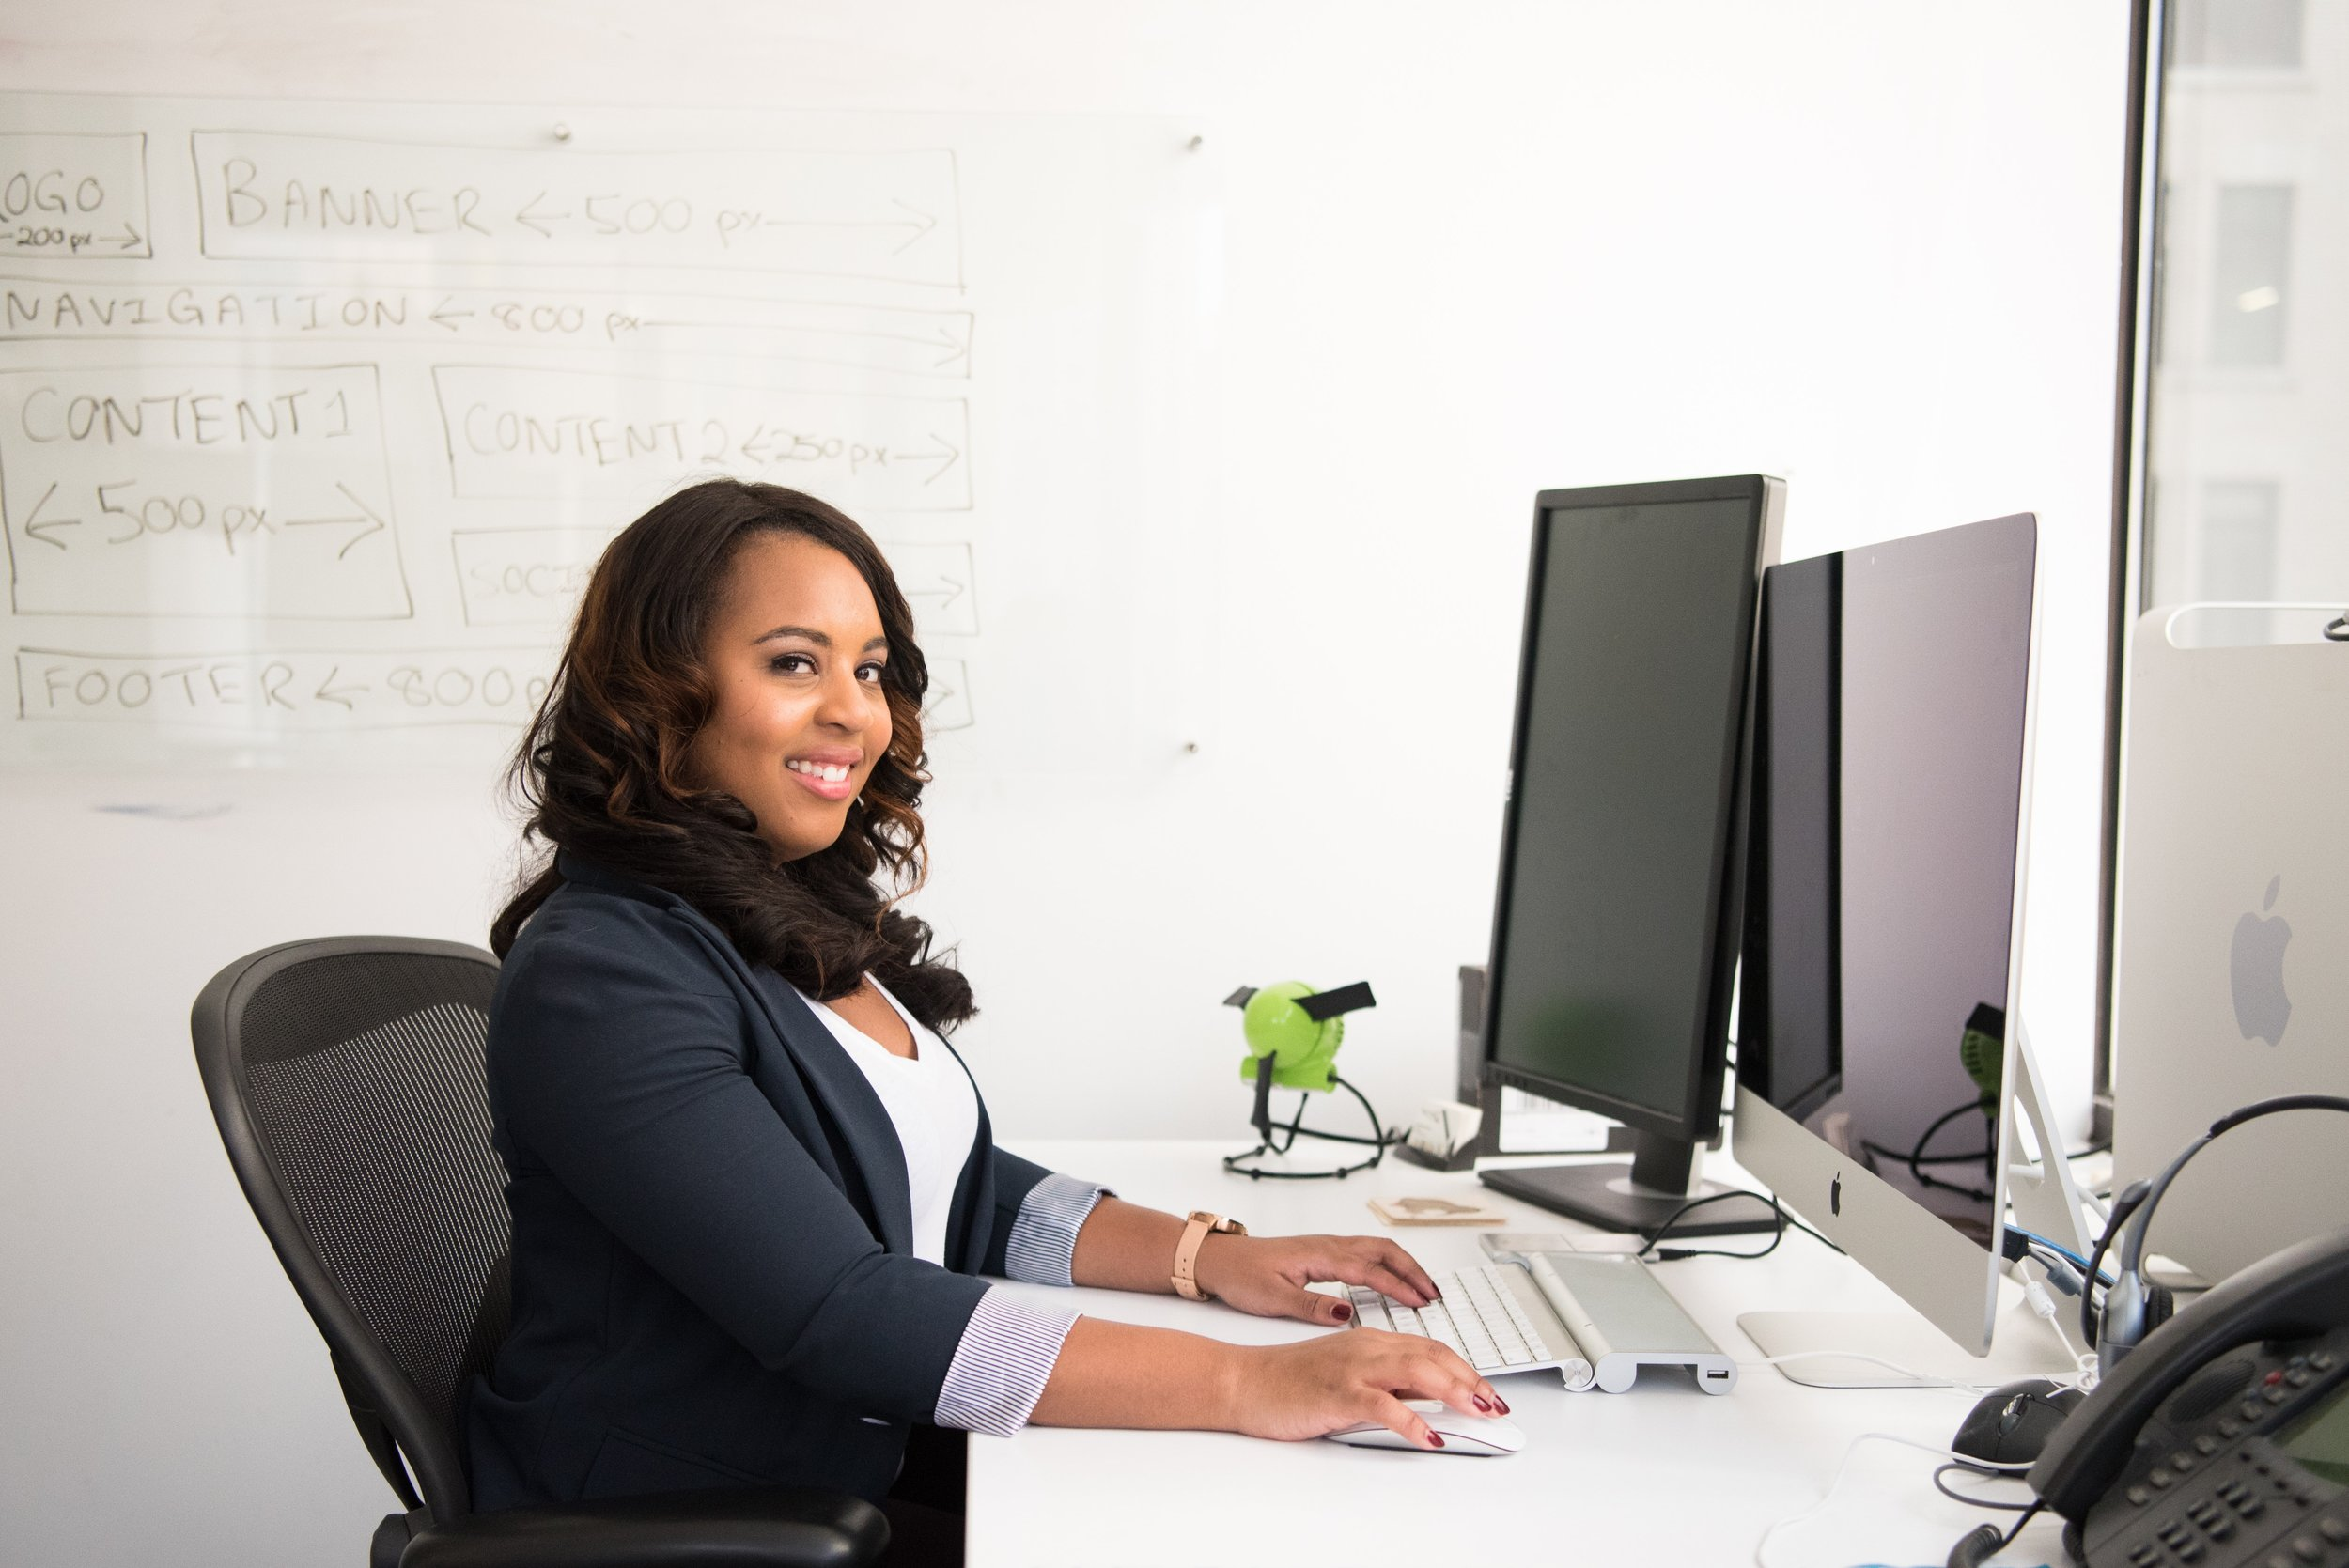 Females currently make up only 25% of the Computer Science Workforce. -